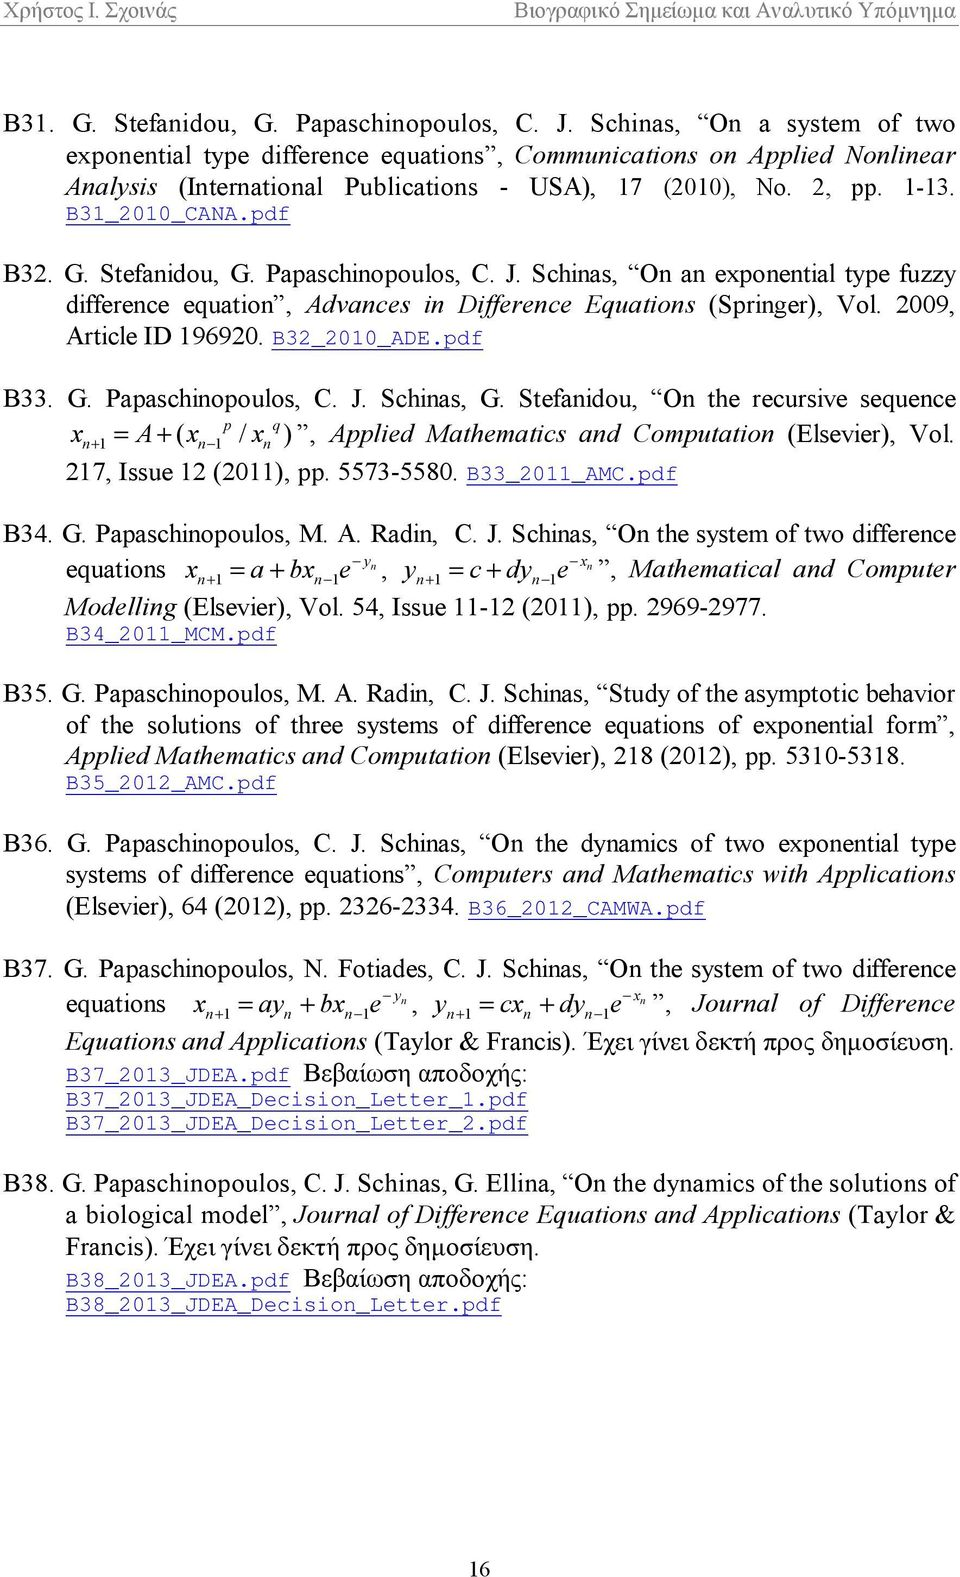 G. Stefanidou, G. Papaschinopoulos, C. J. Schinas, On an exponential type fuzzy difference equation, Advances in Difference Equations (Springer), Vol. 2009, Article ID 196920. B32_2010_ADE.pdf Β33. G. Papaschinopoulos, C. J. Schinas, G.